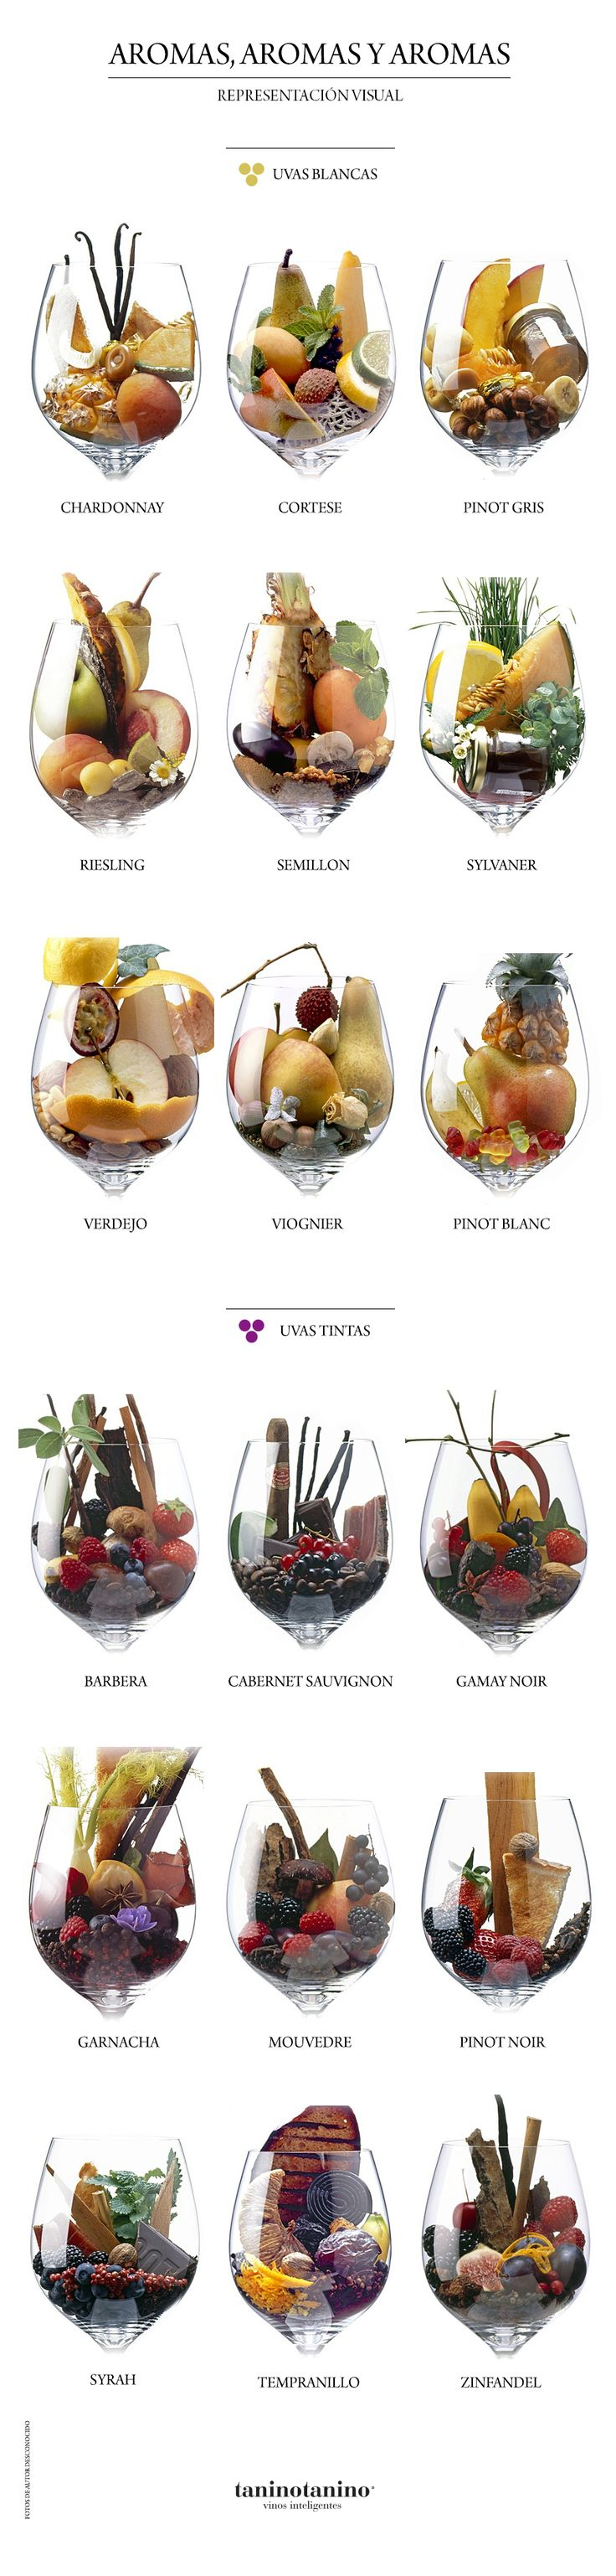 The flavors of wine.